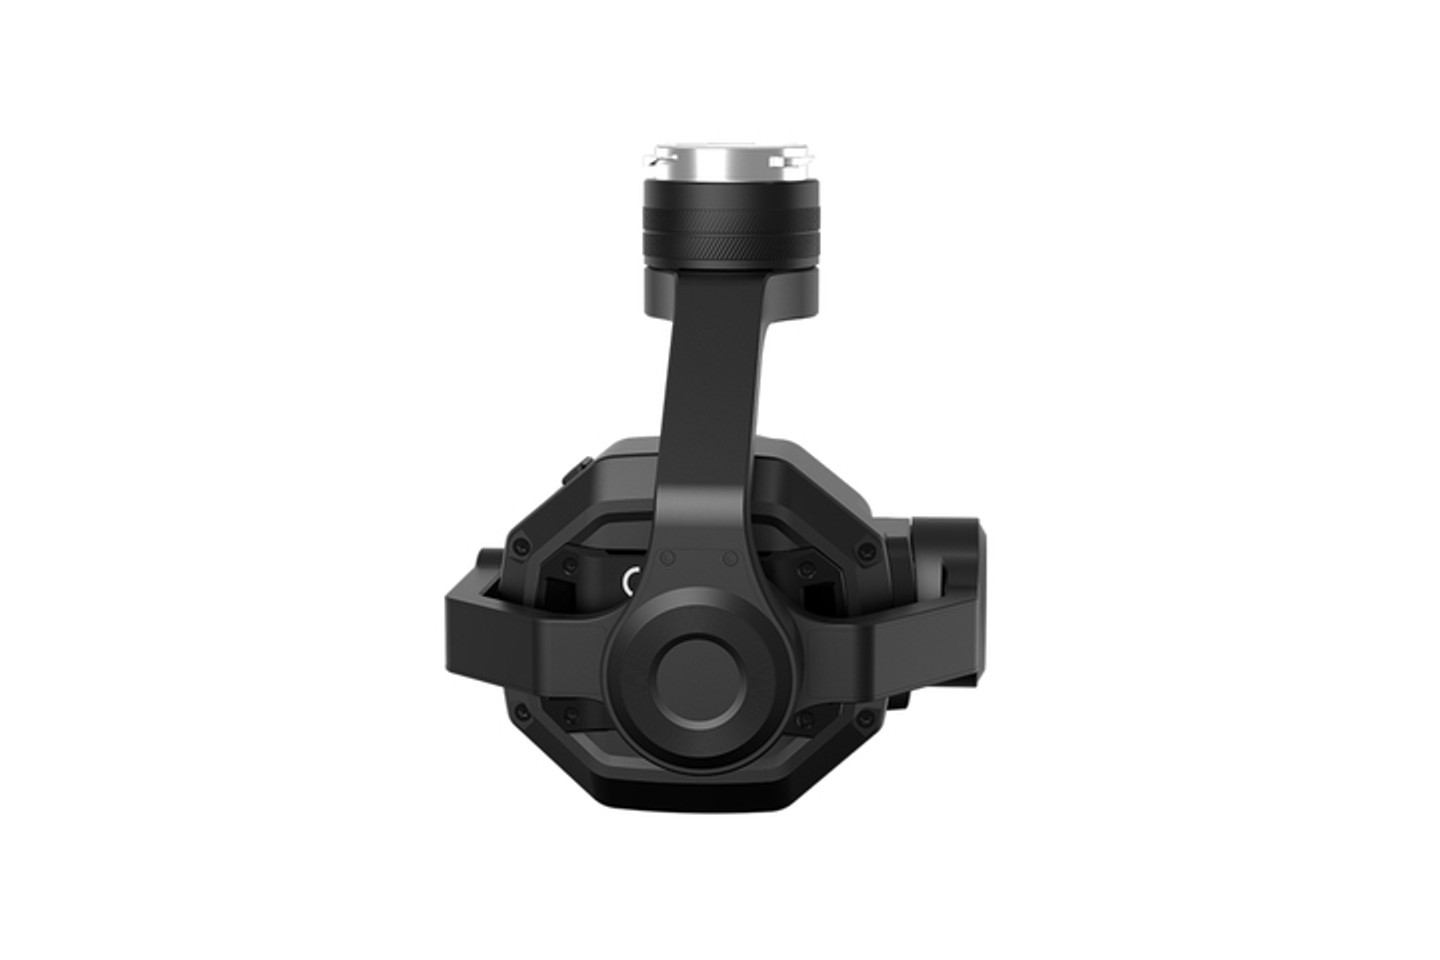 Inspire 2 Zenmuse X7 Camera and Gimbal (Lens Excluded)